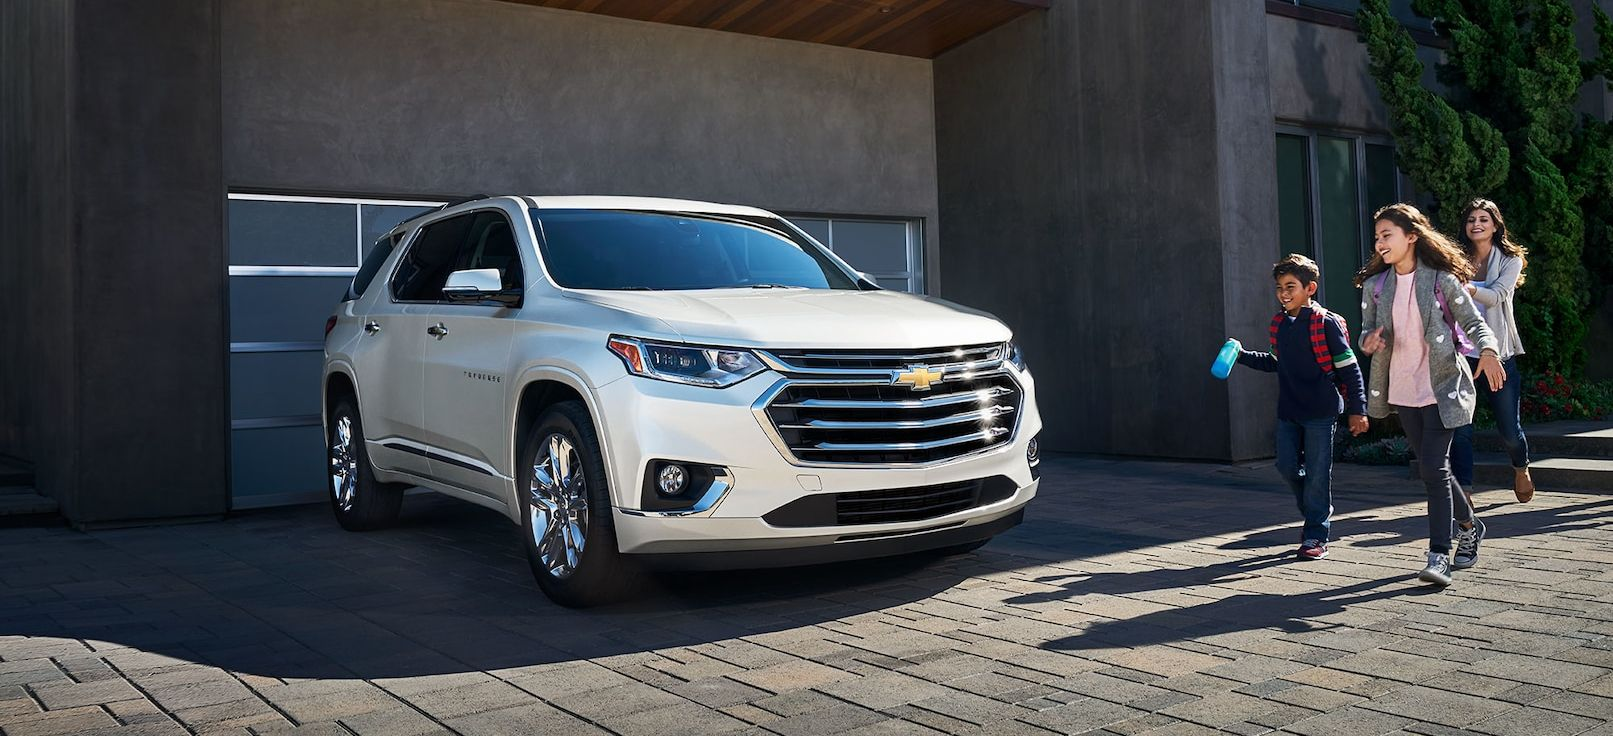 2019 Chevrolet Traverse for Sale in Jackson, MI